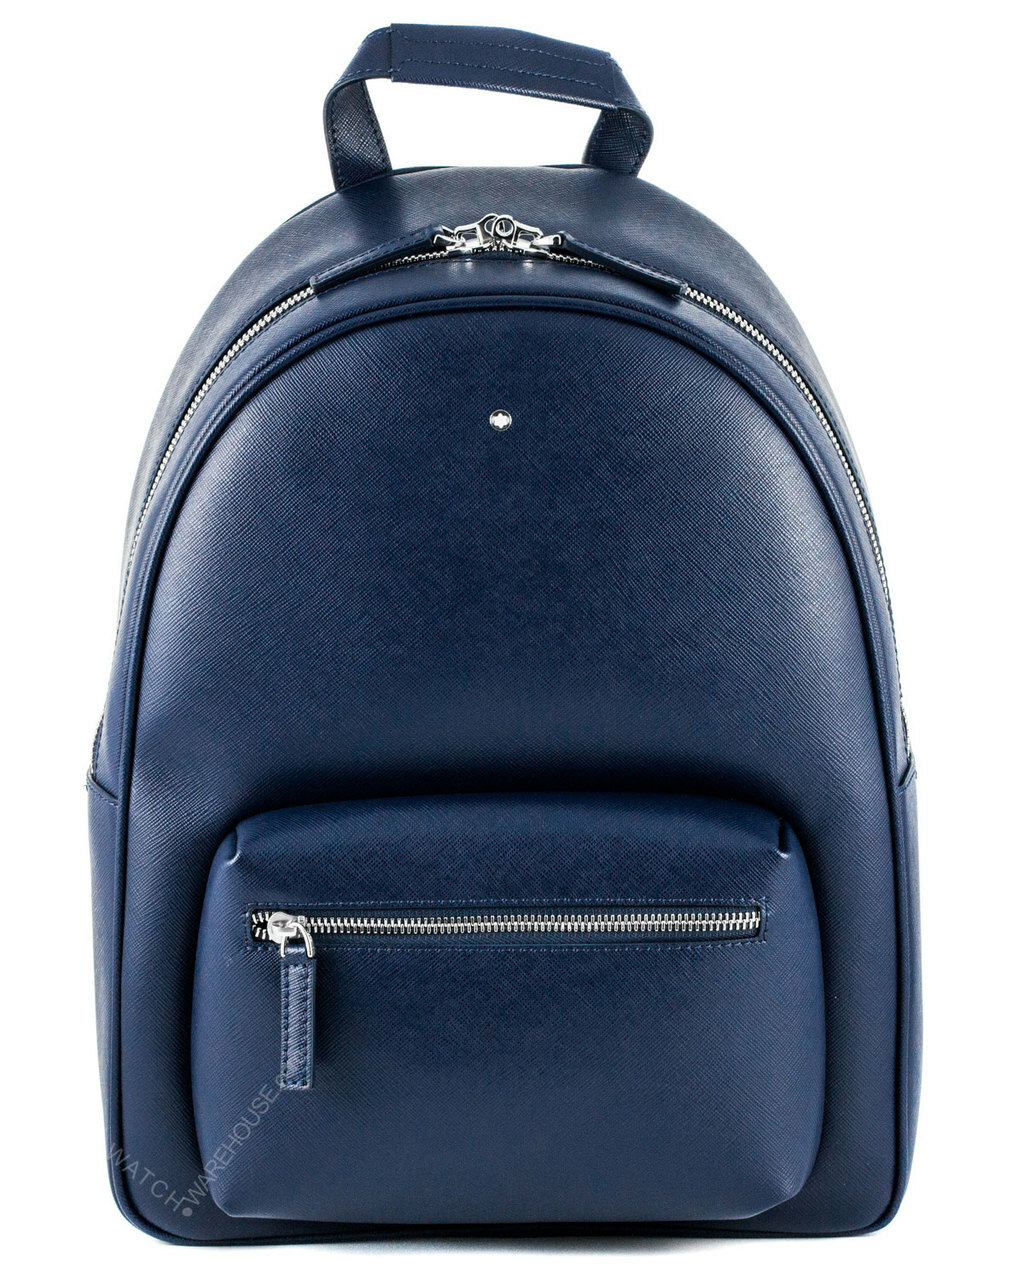 Montblanc sartorial small dome blue italian leather backpack